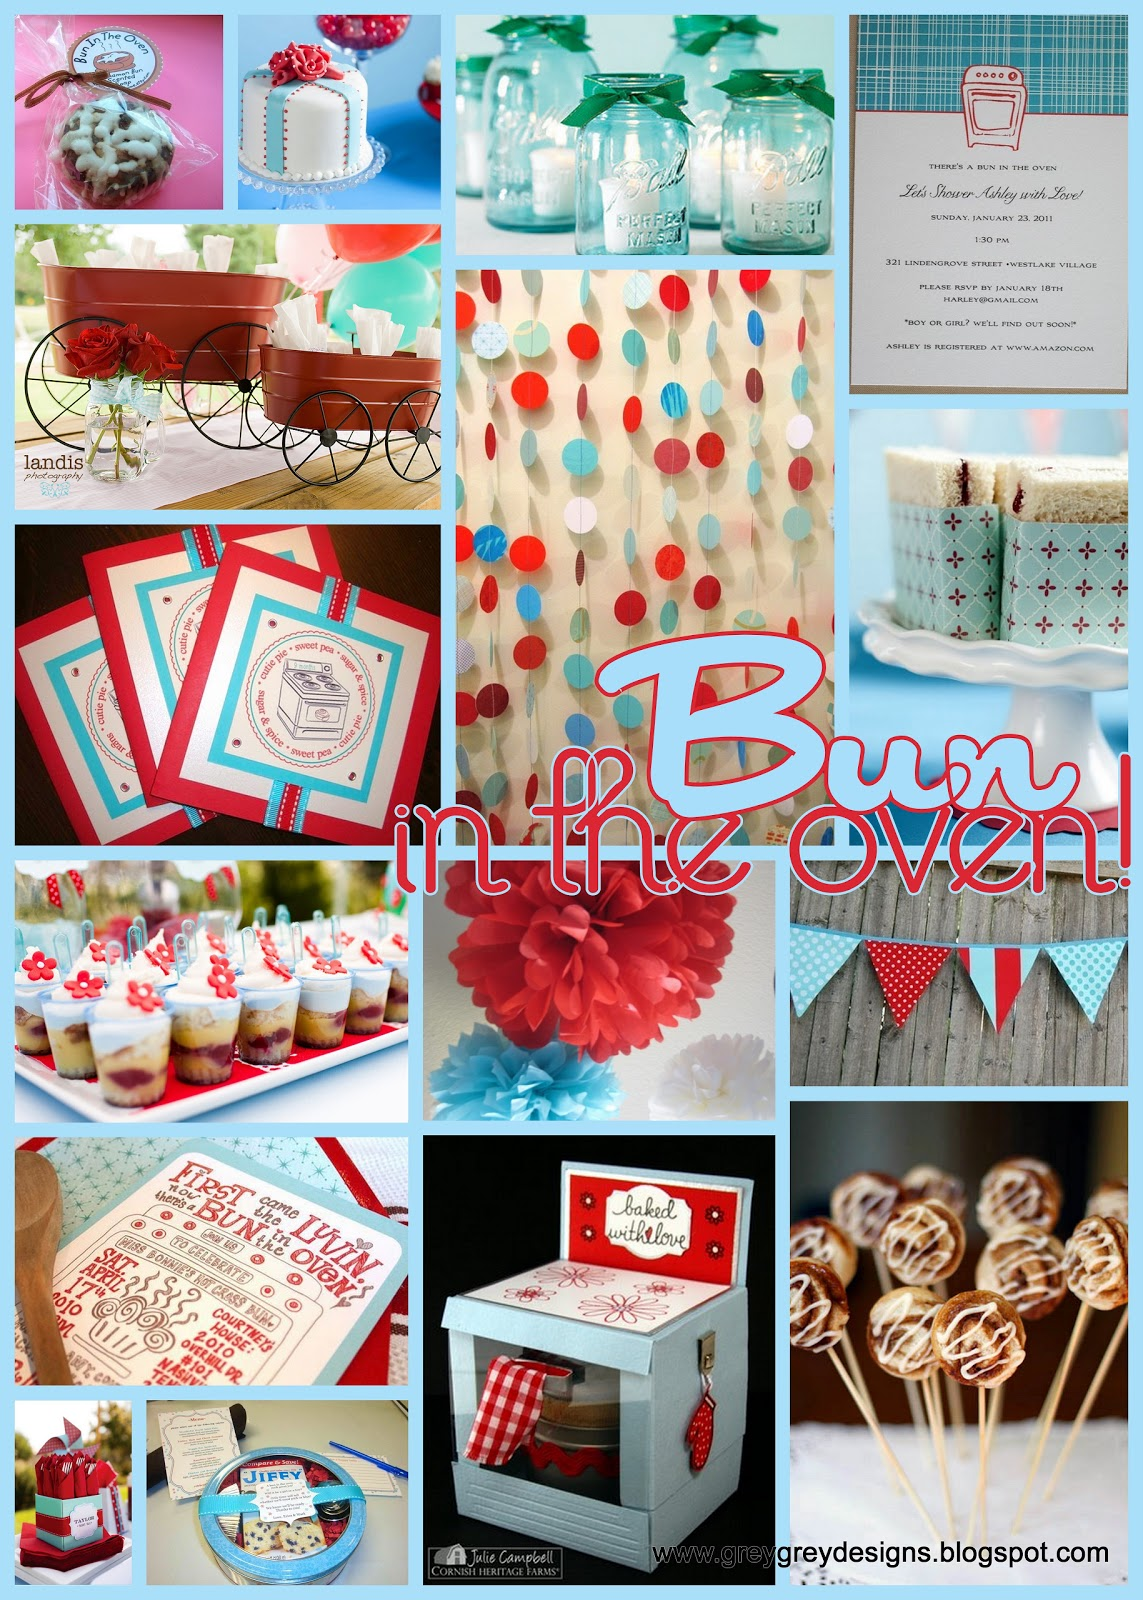 greygrey designs inspiration bun in the oven baby shower